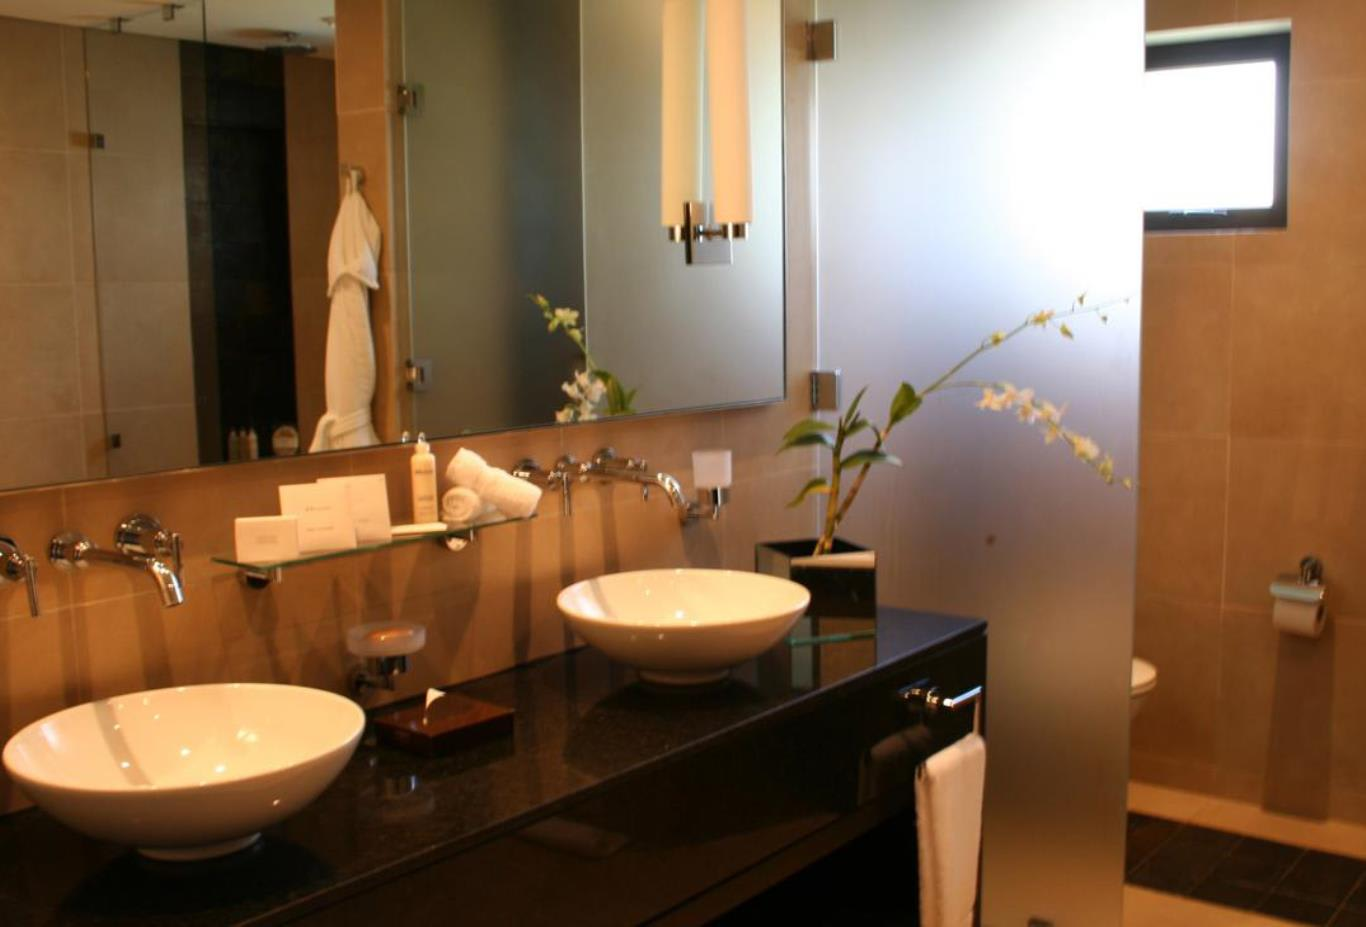 Prestige Suite bathroom basins